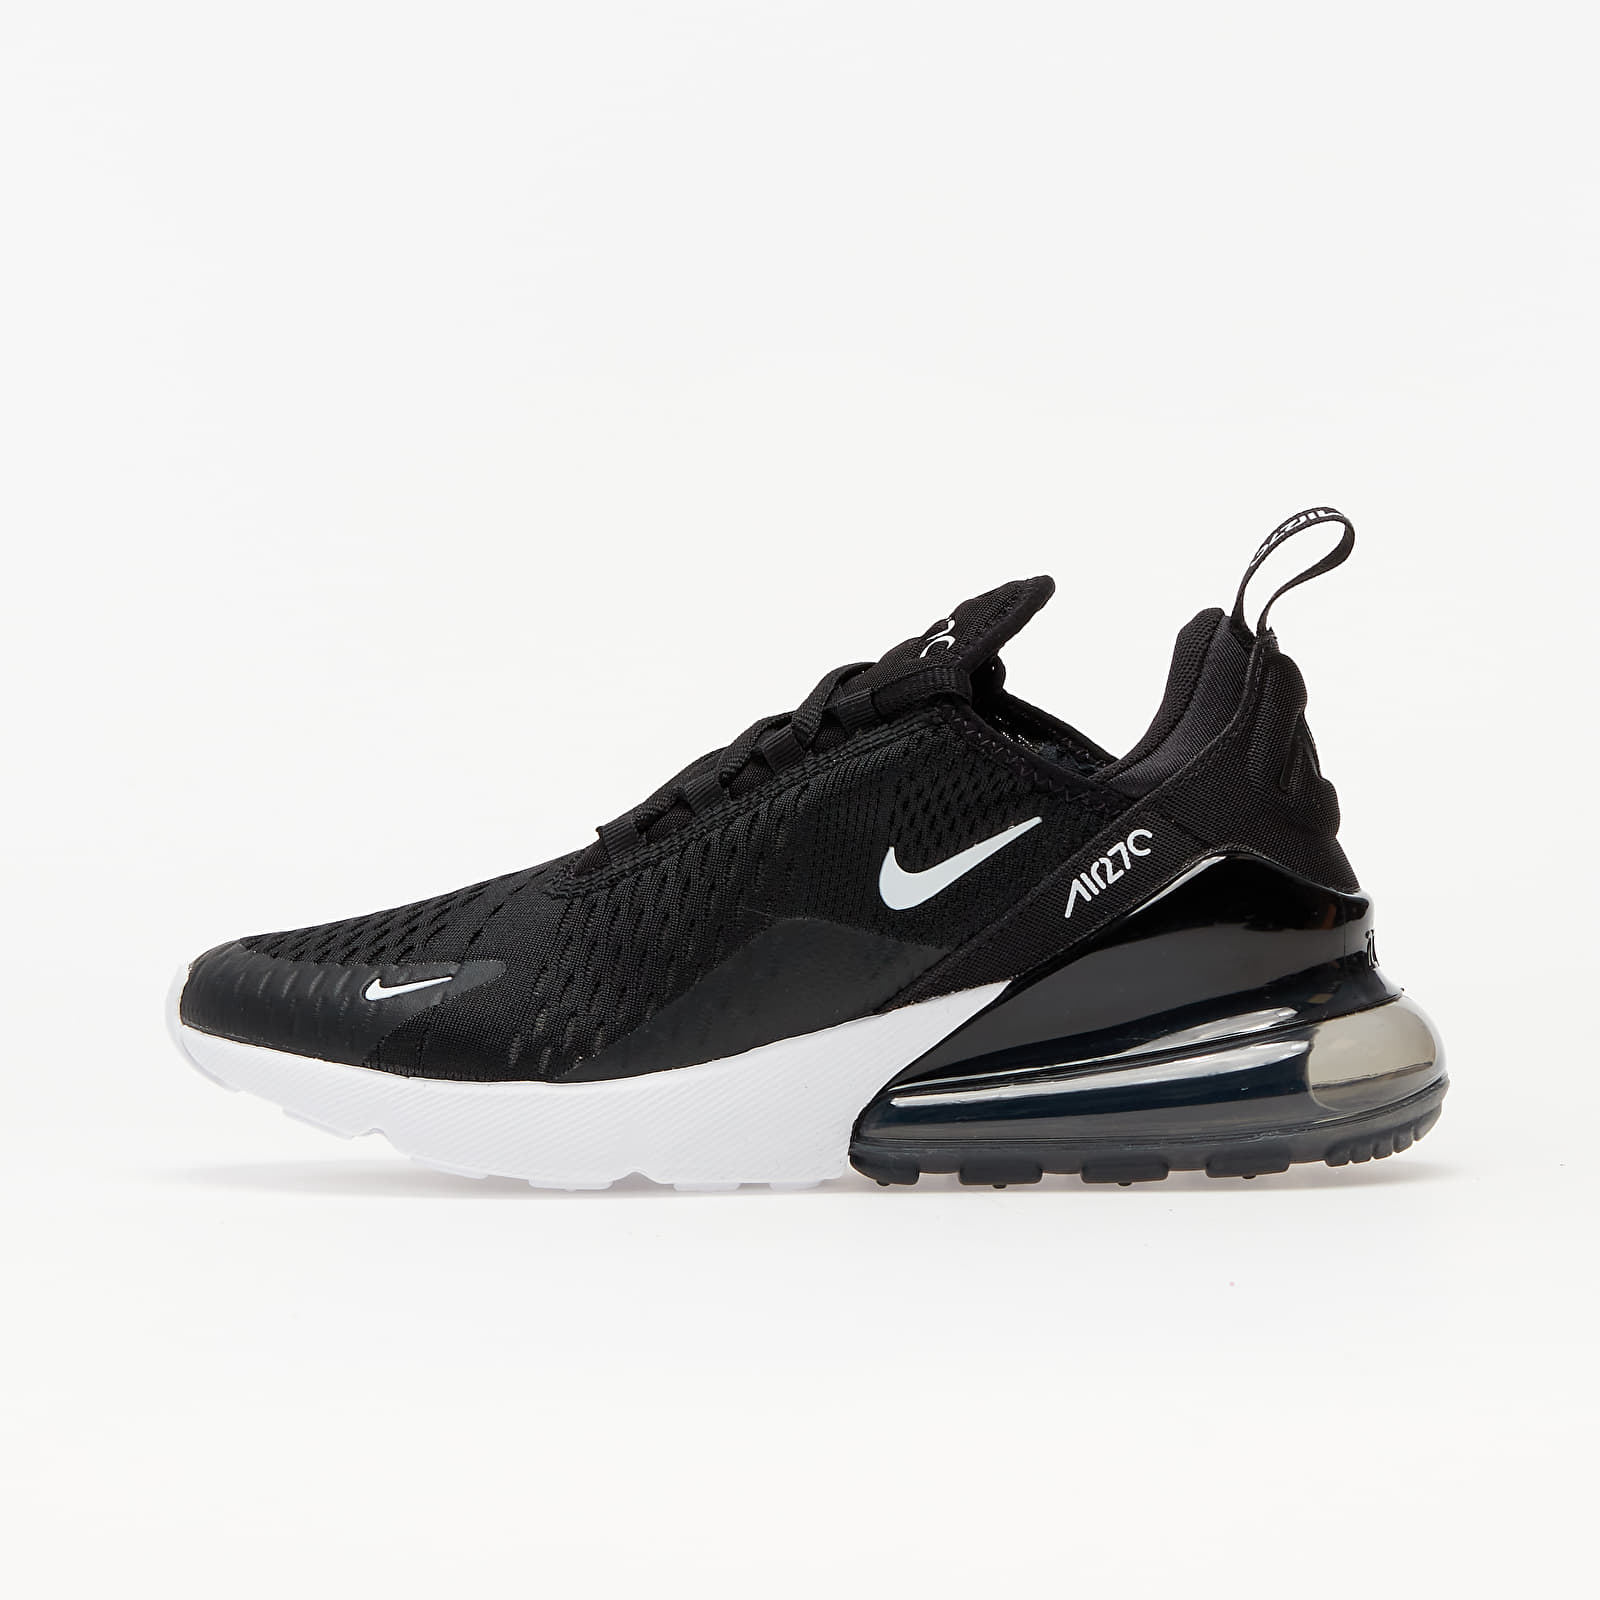 Ženski čevlji Nike W Air Max 270 Black/ Anthracite-White